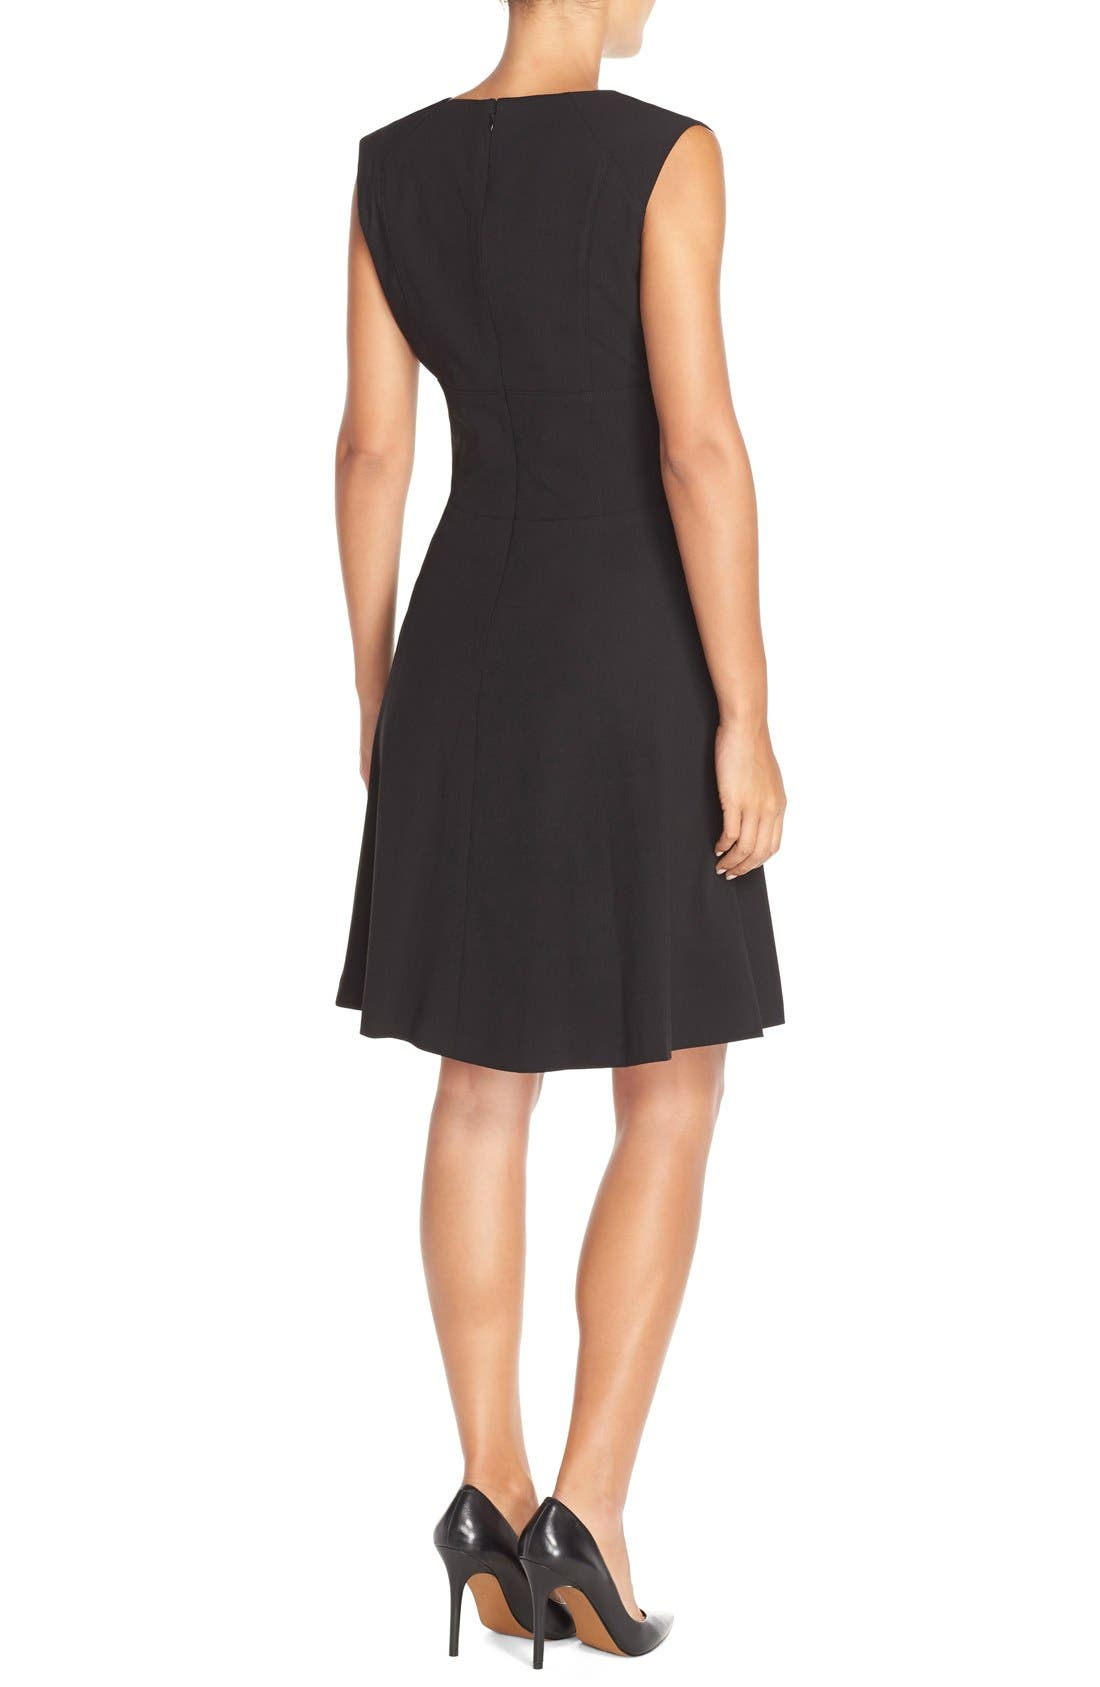 Alternate Image 2  - Marc New York 'Lux' Stretch Fit & Flare Dress